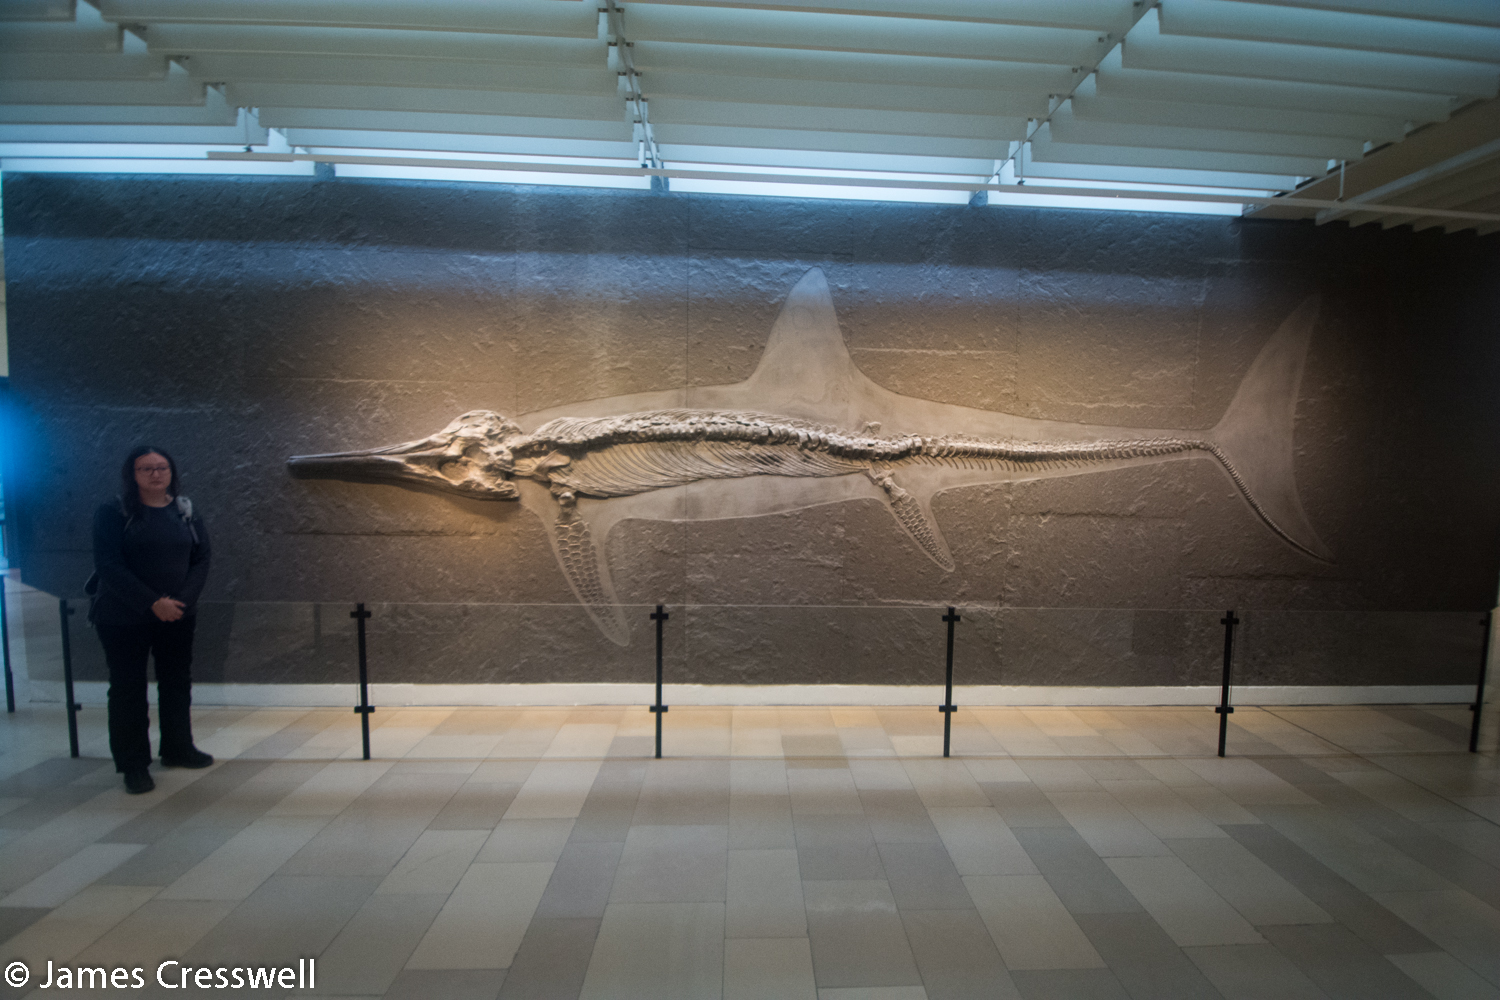 Lady standing next to an ichthyosaur fossil